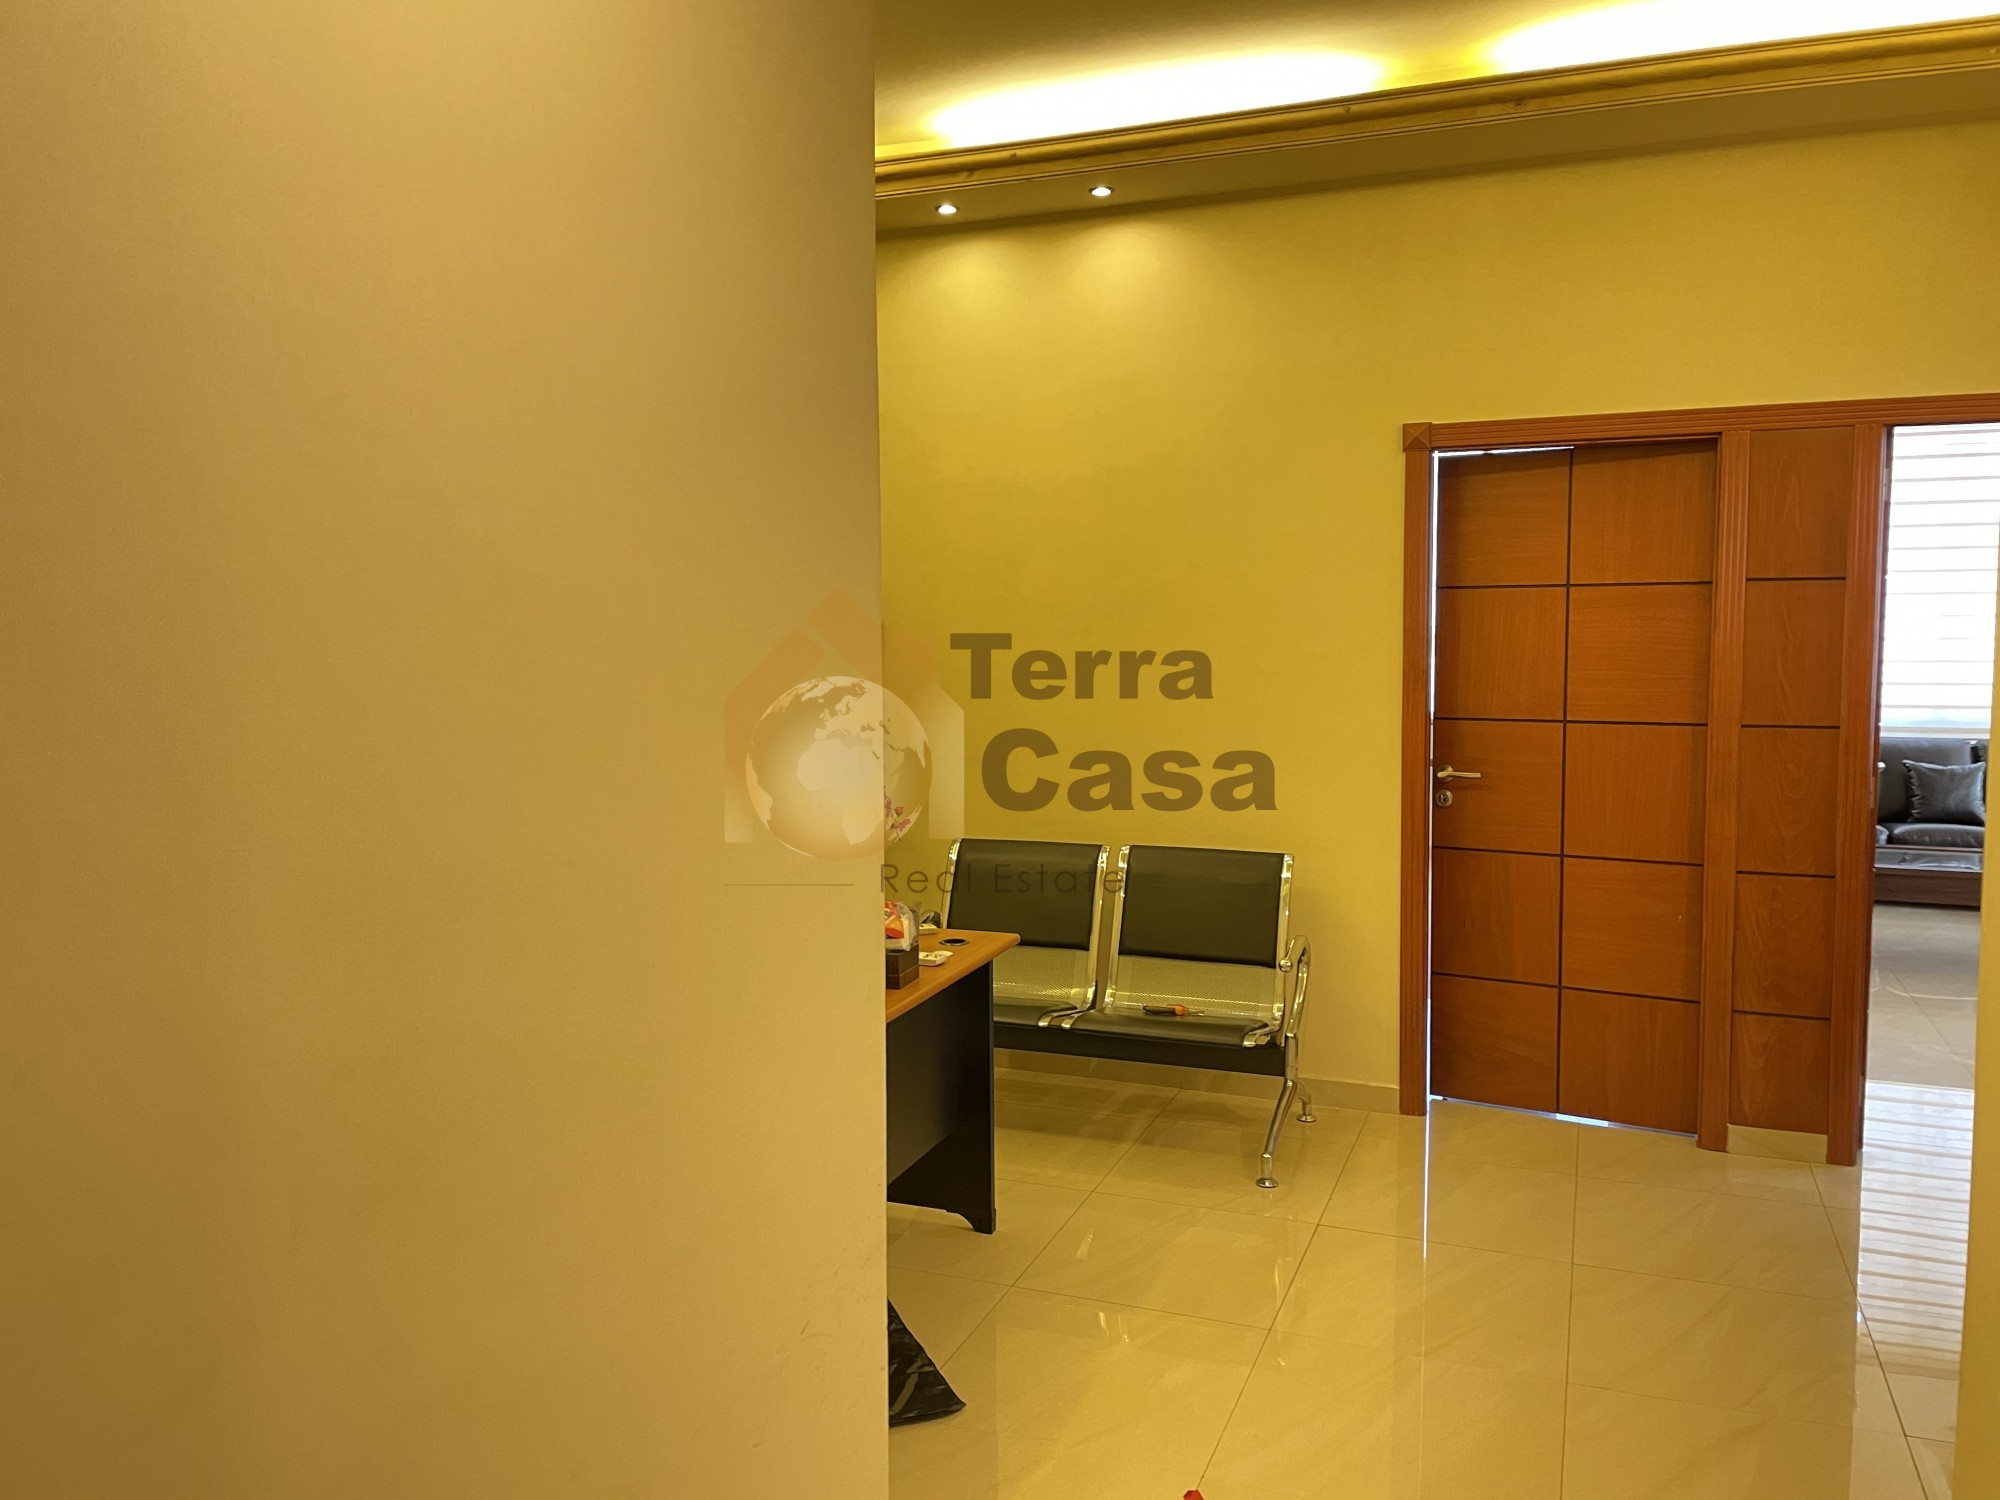 For rent a 75 sqm office for 700 $ banker cheque